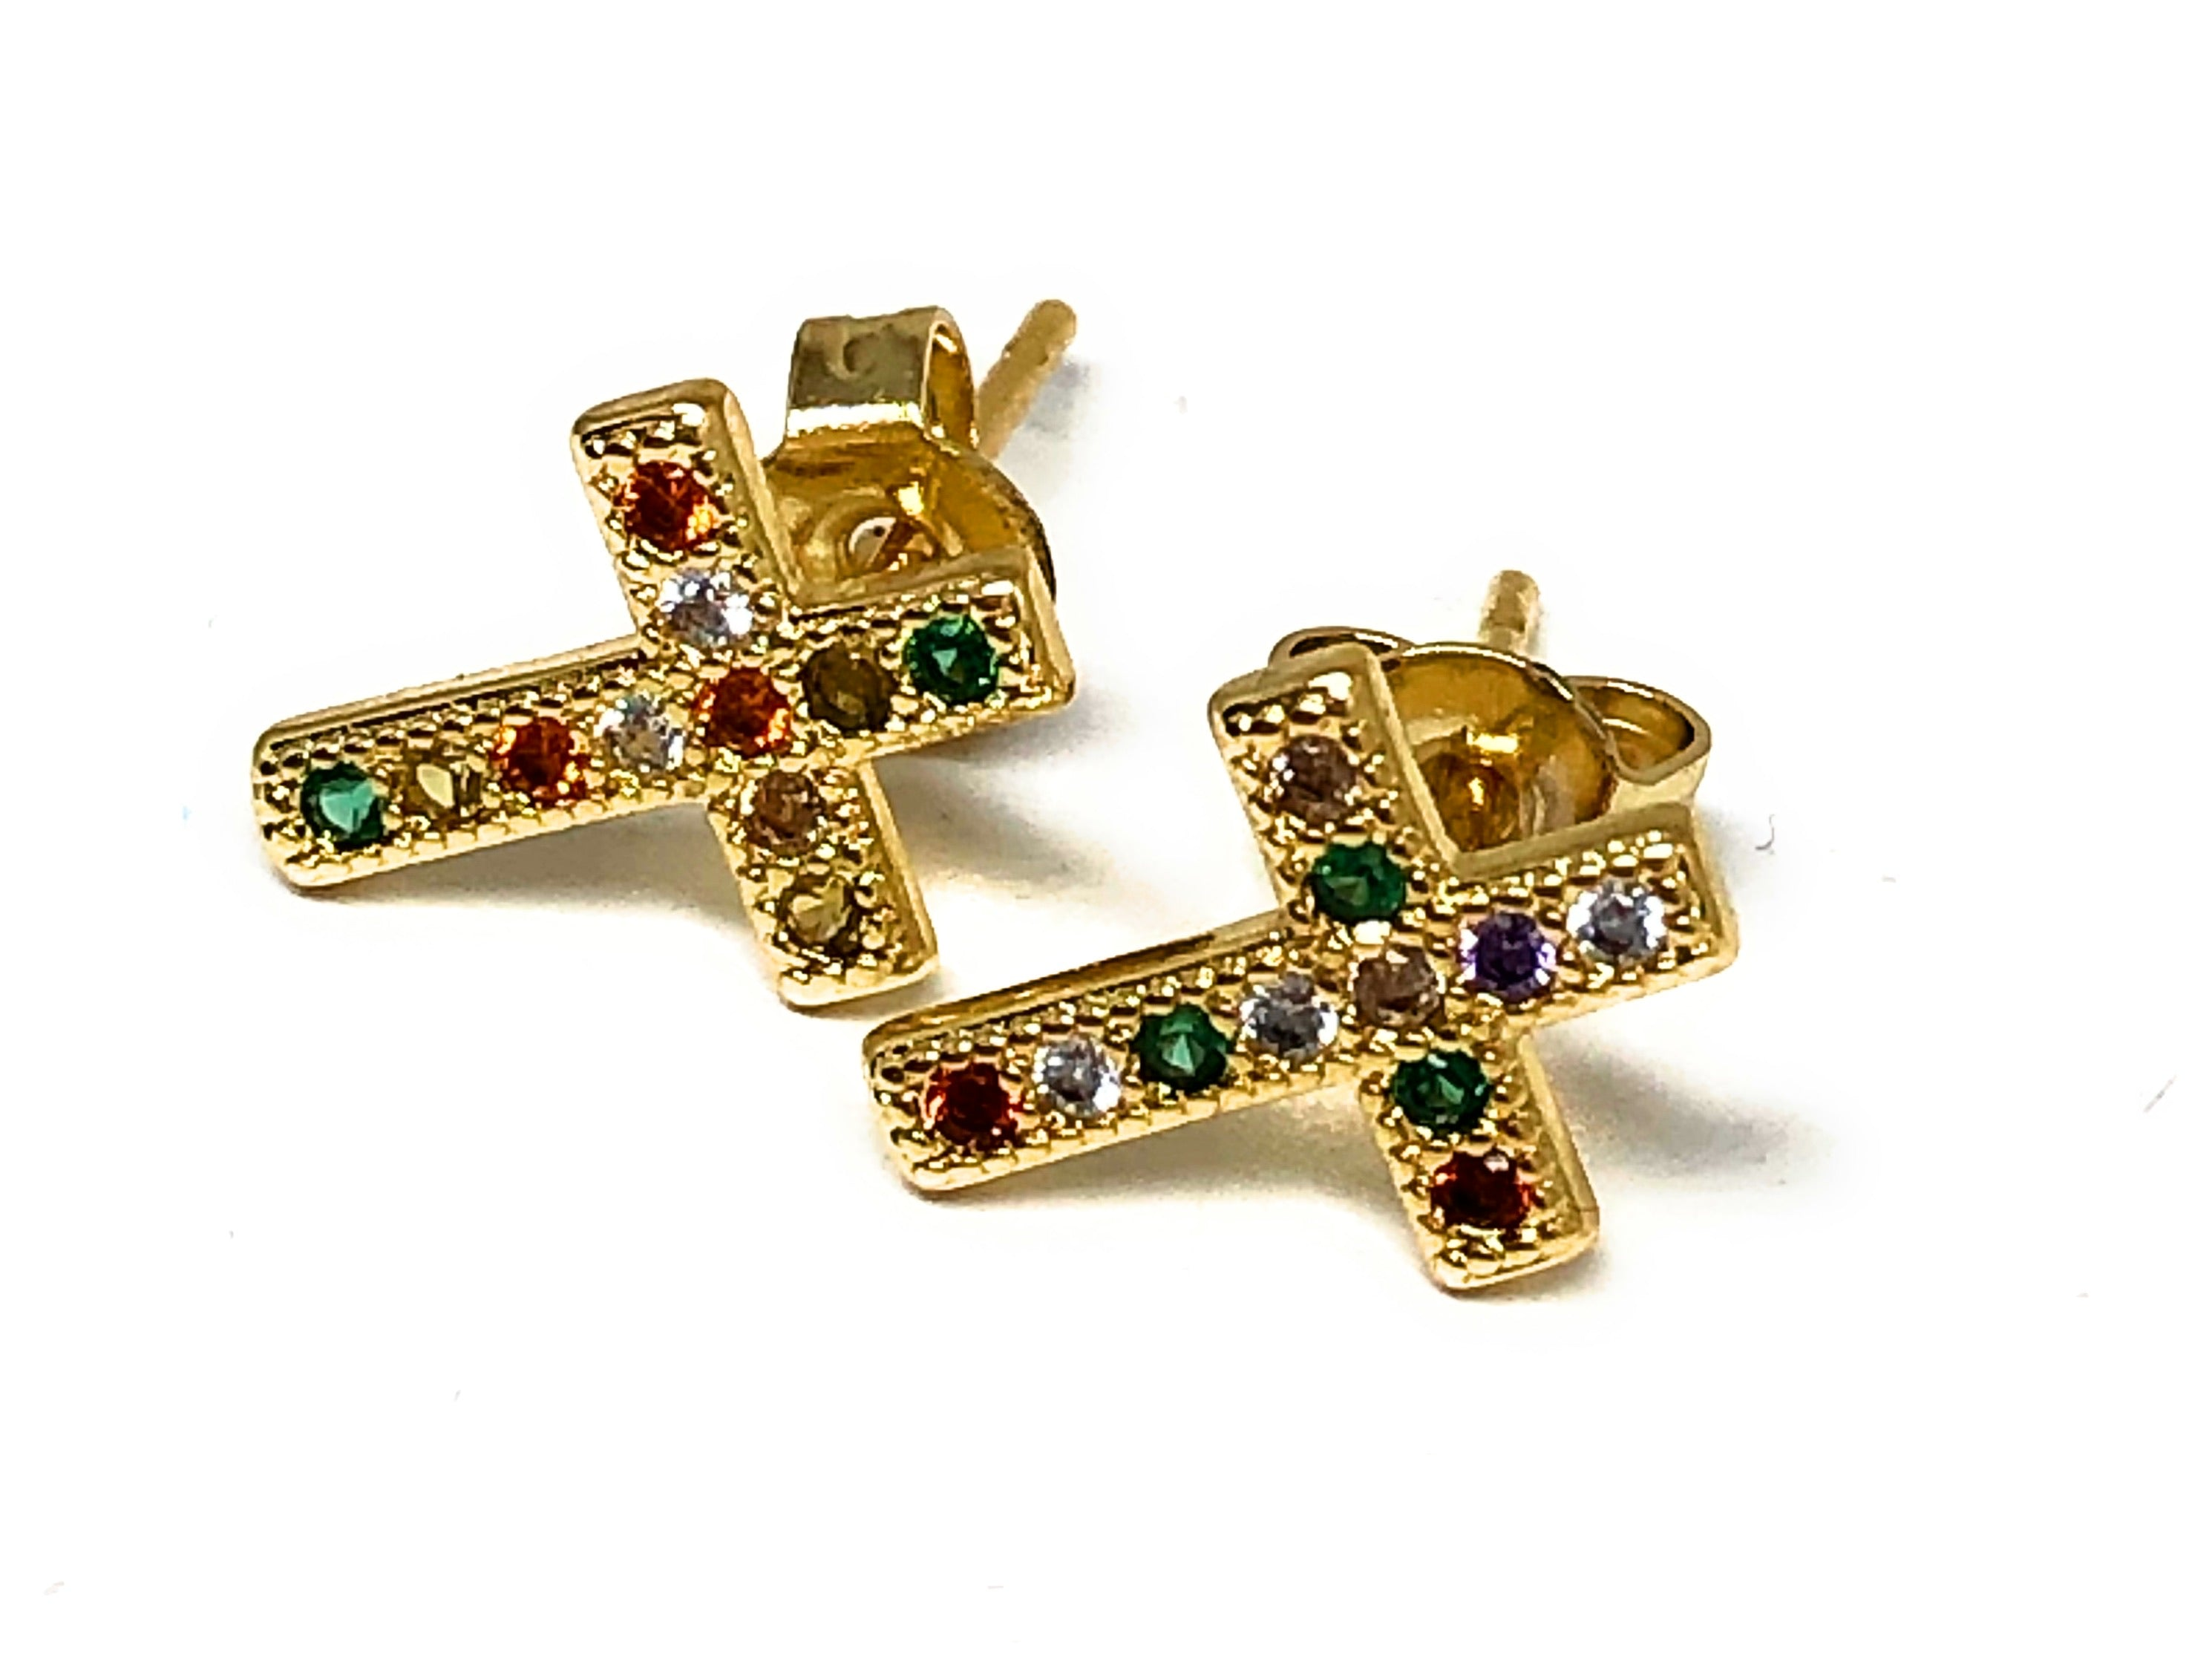 Gold Plated Colorful Cross Earrings  w/ Stones Aretes